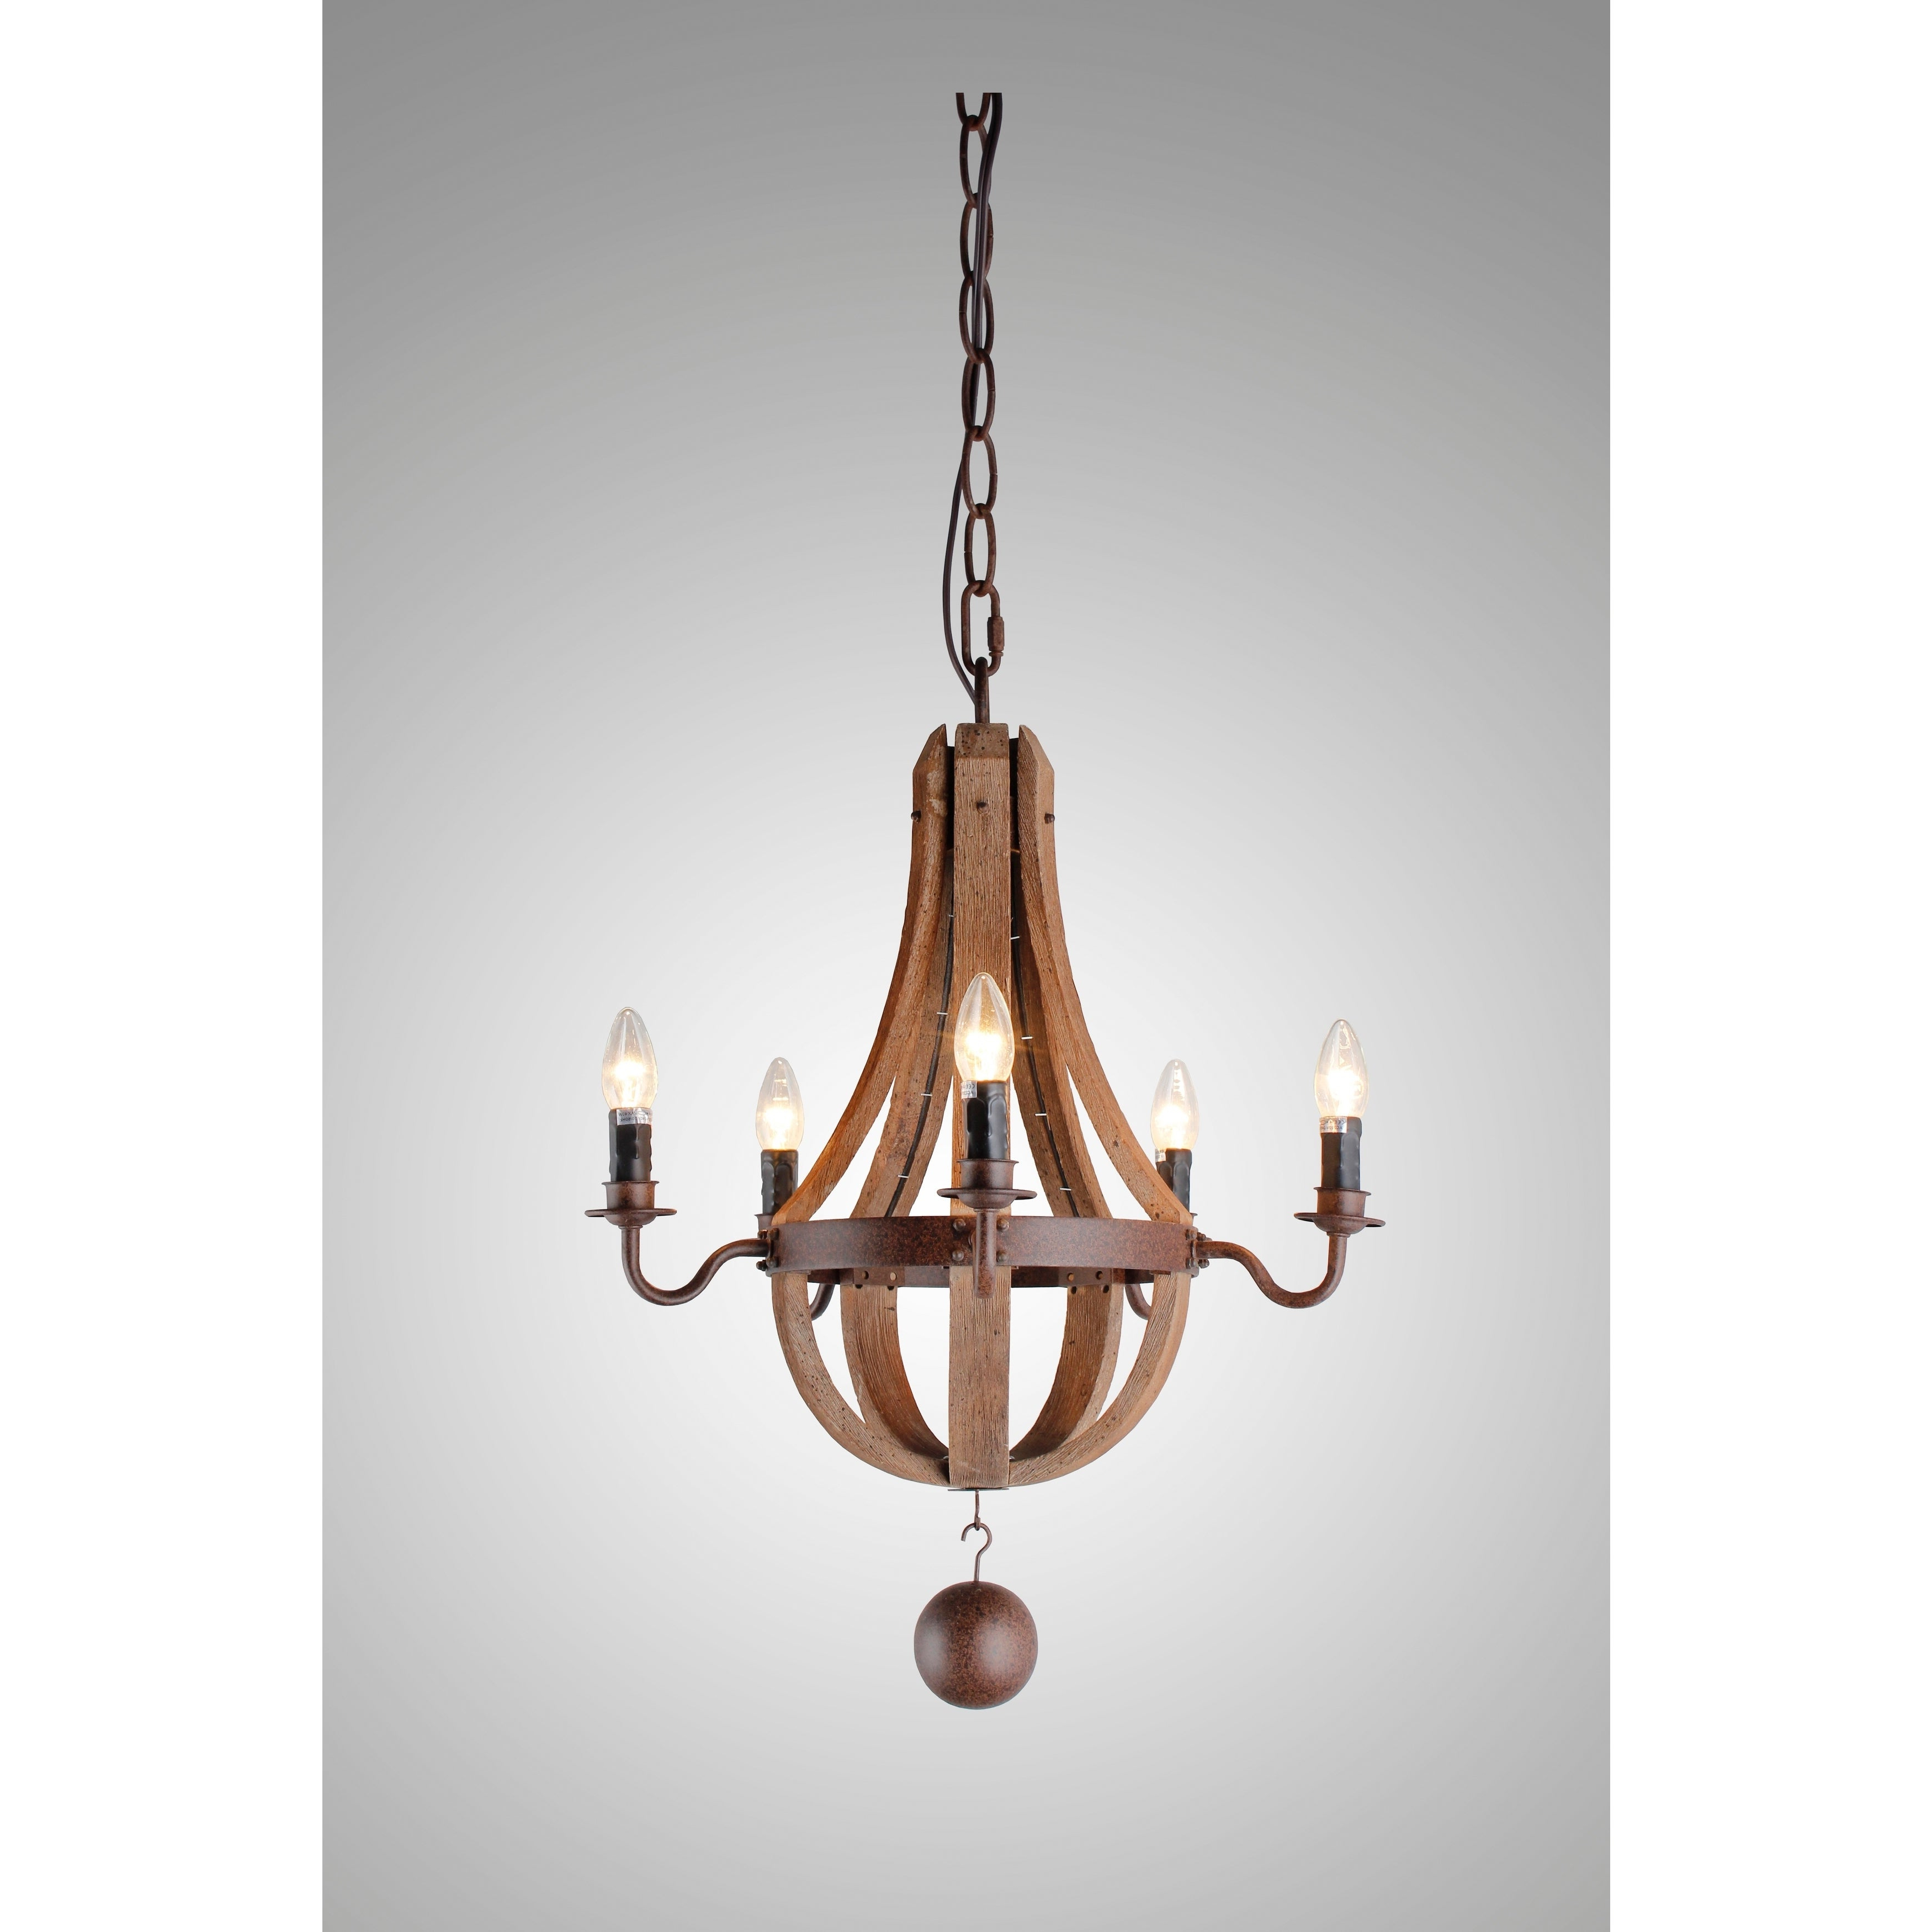 Widely Used Berger 5 Light Candle Style Chandeliers With Regard To Y Decor 5 Light Candle Style Chandelier In Iron Frame & Rustic Finish (View 19 of 20)